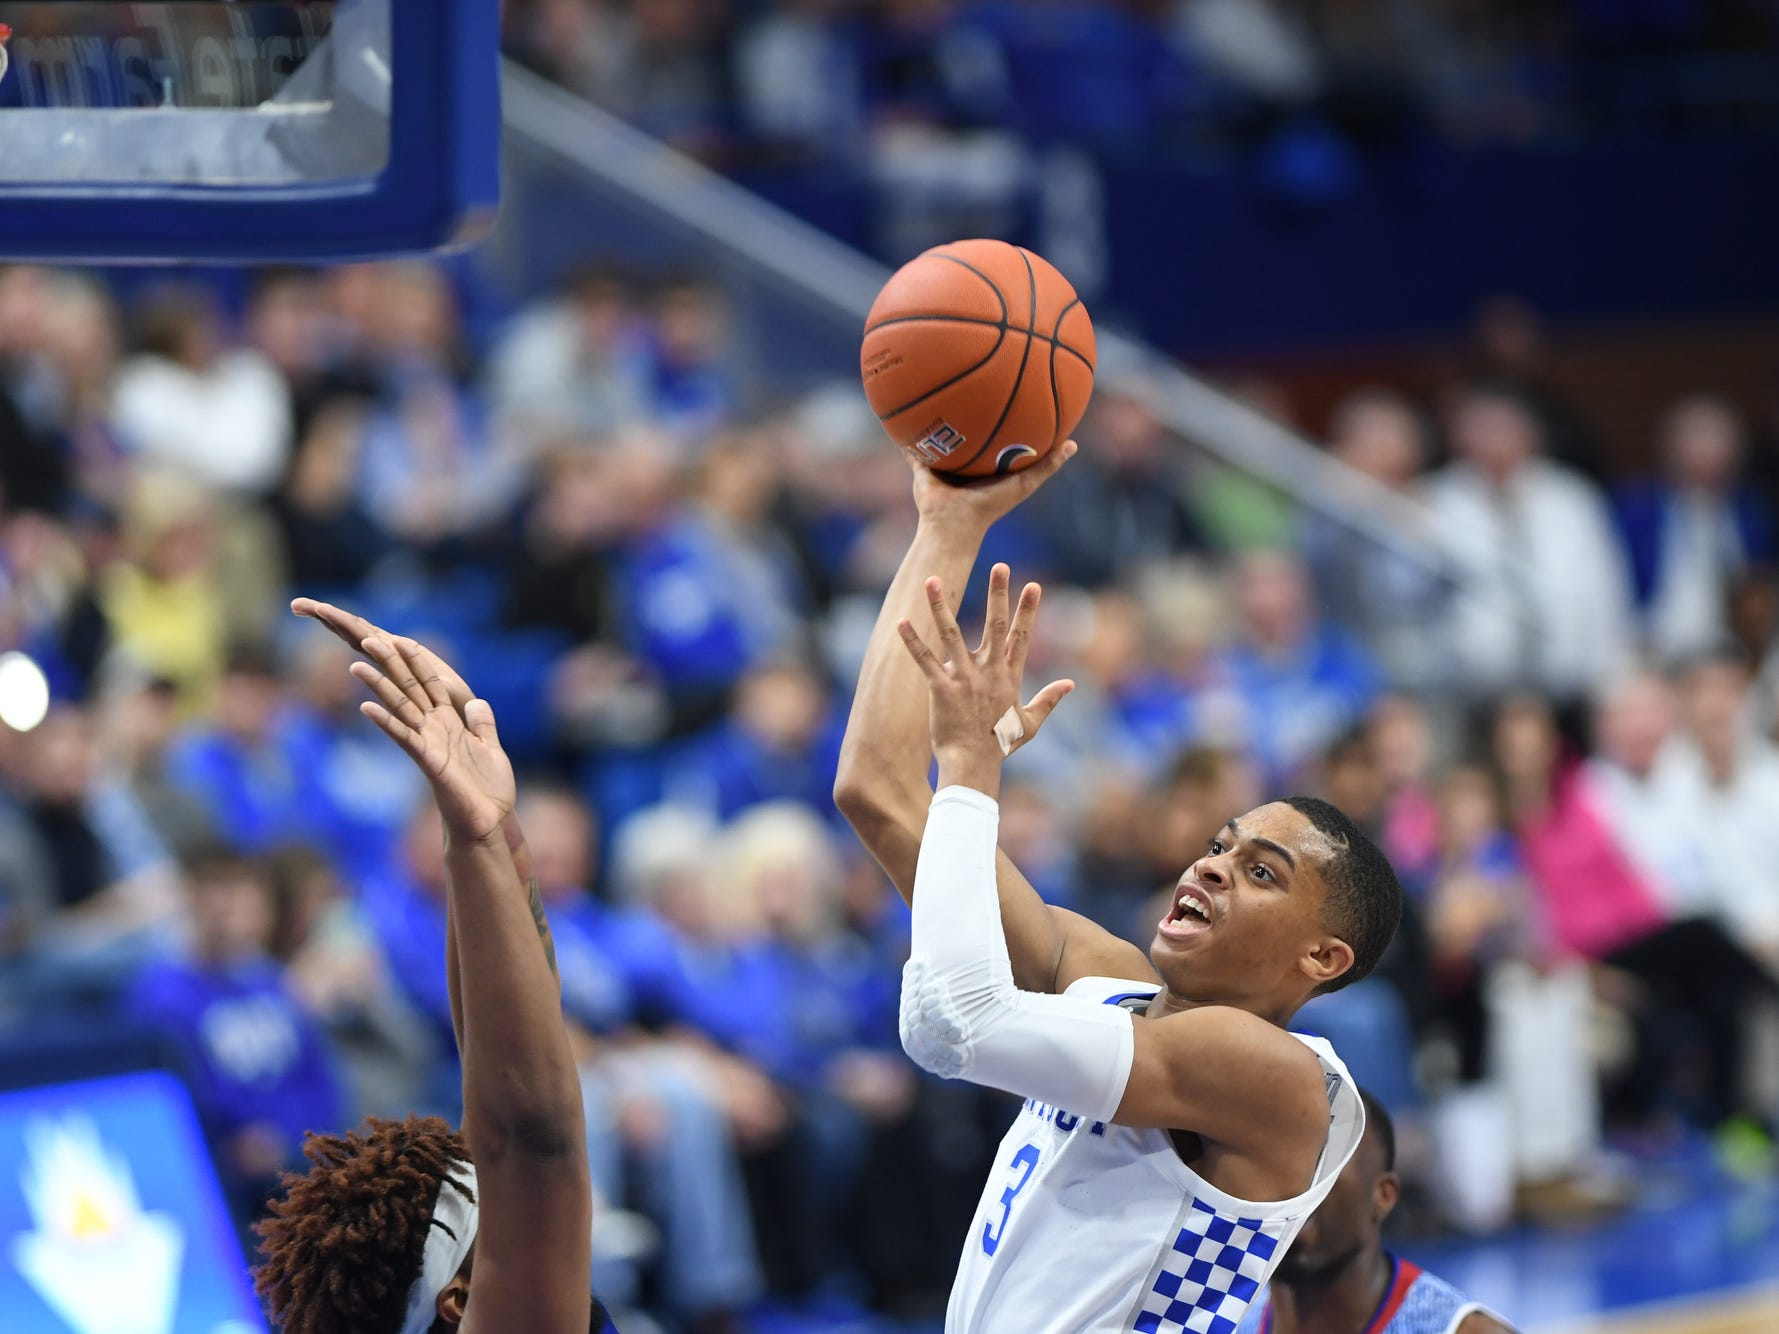 UK guard Keldon Johnson shoots the ball during the University of Kentucky men's basketball game against Tennessee State at Rupp Arena in Lexington, Kentucky on Friday, Nov. 23, 2018.